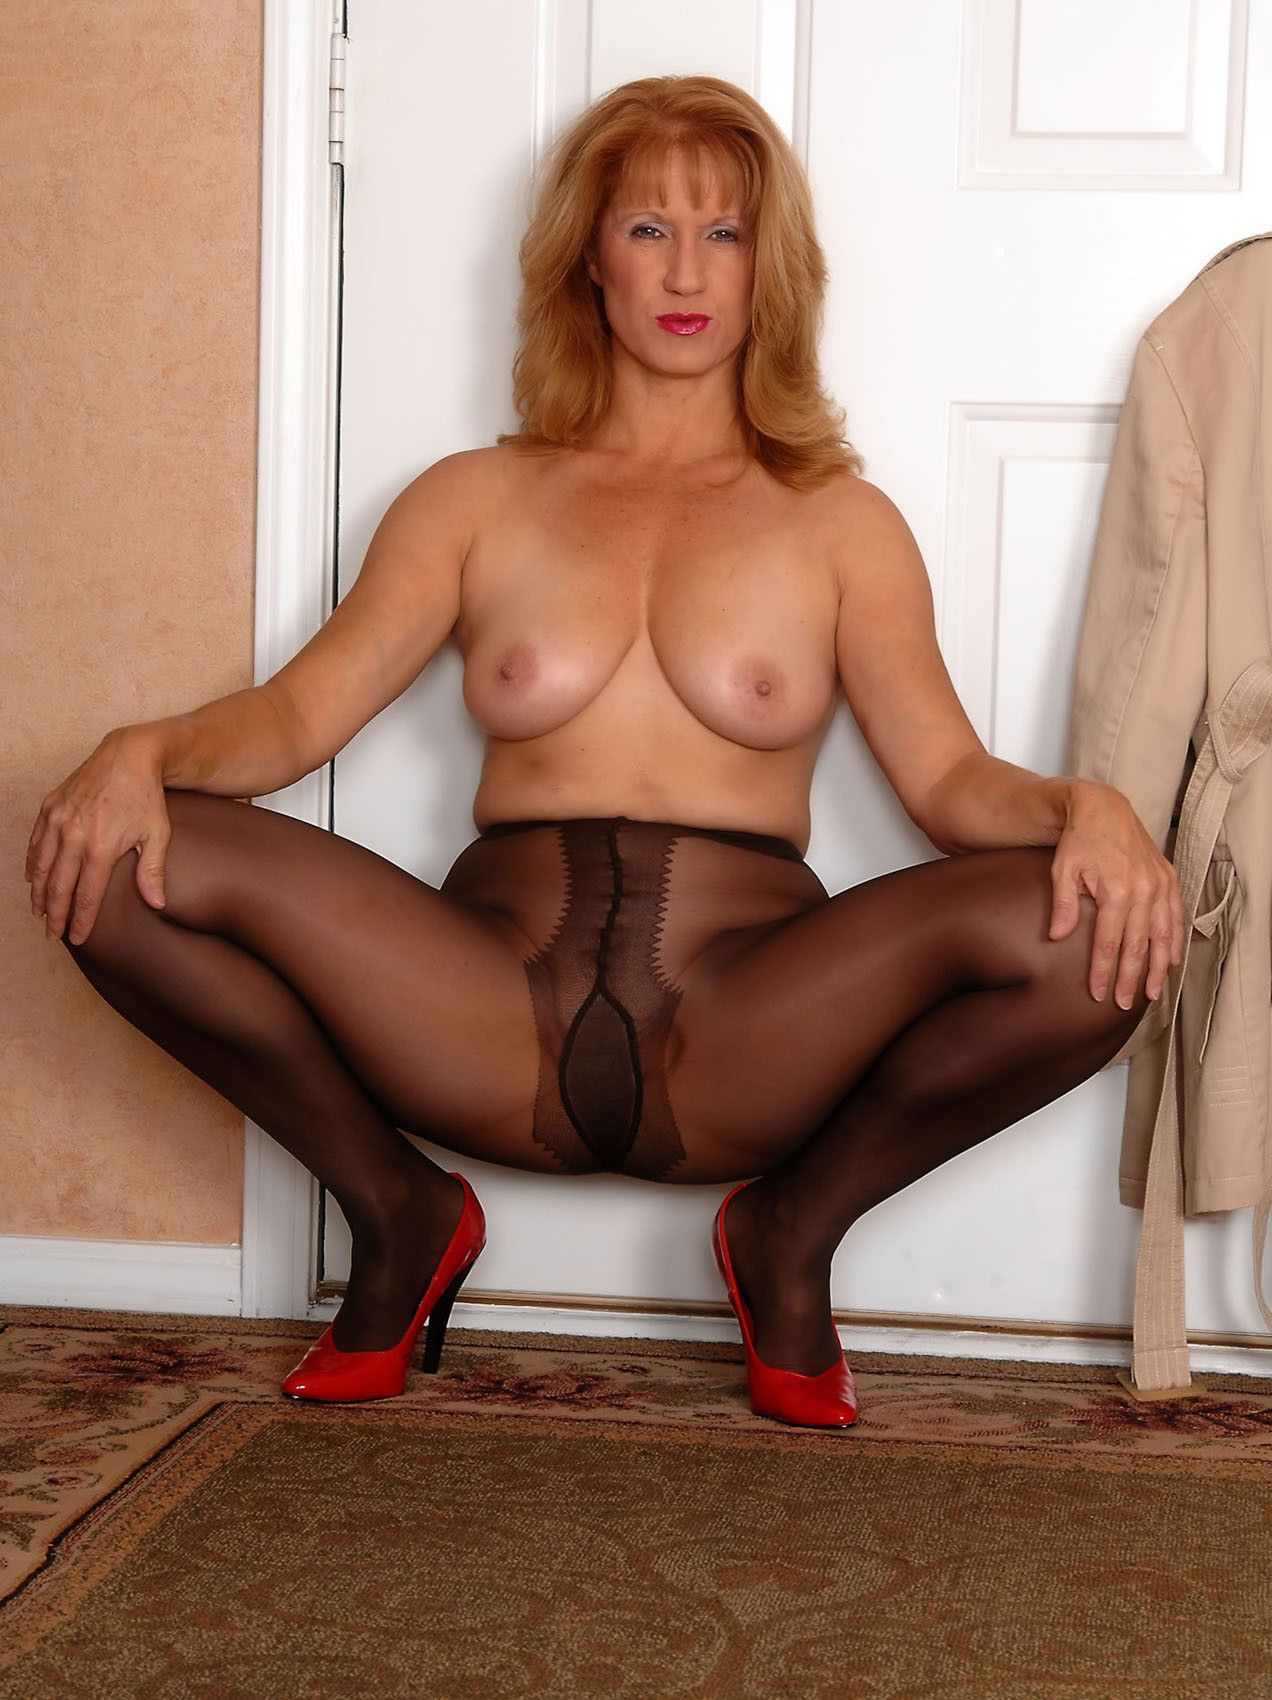 What plumper pantyhose free thumbs